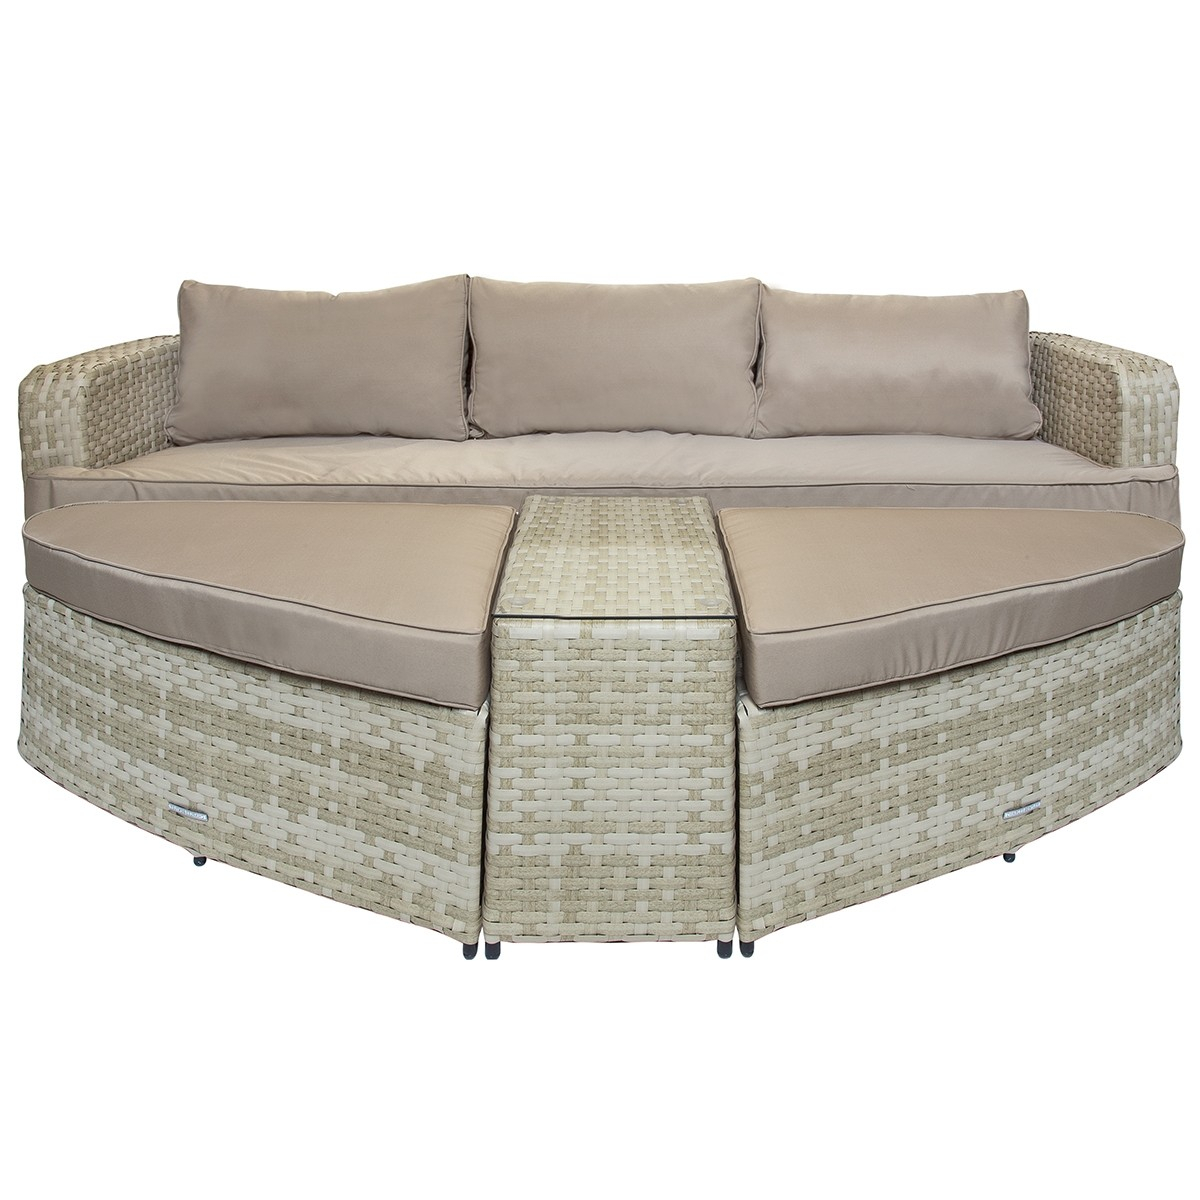 Charles Bentley Roma Rattan Sofa Two Large Footstools Table Natural Sand  Tone for Natural Cane Media Console Tables (Image 9 of 30)